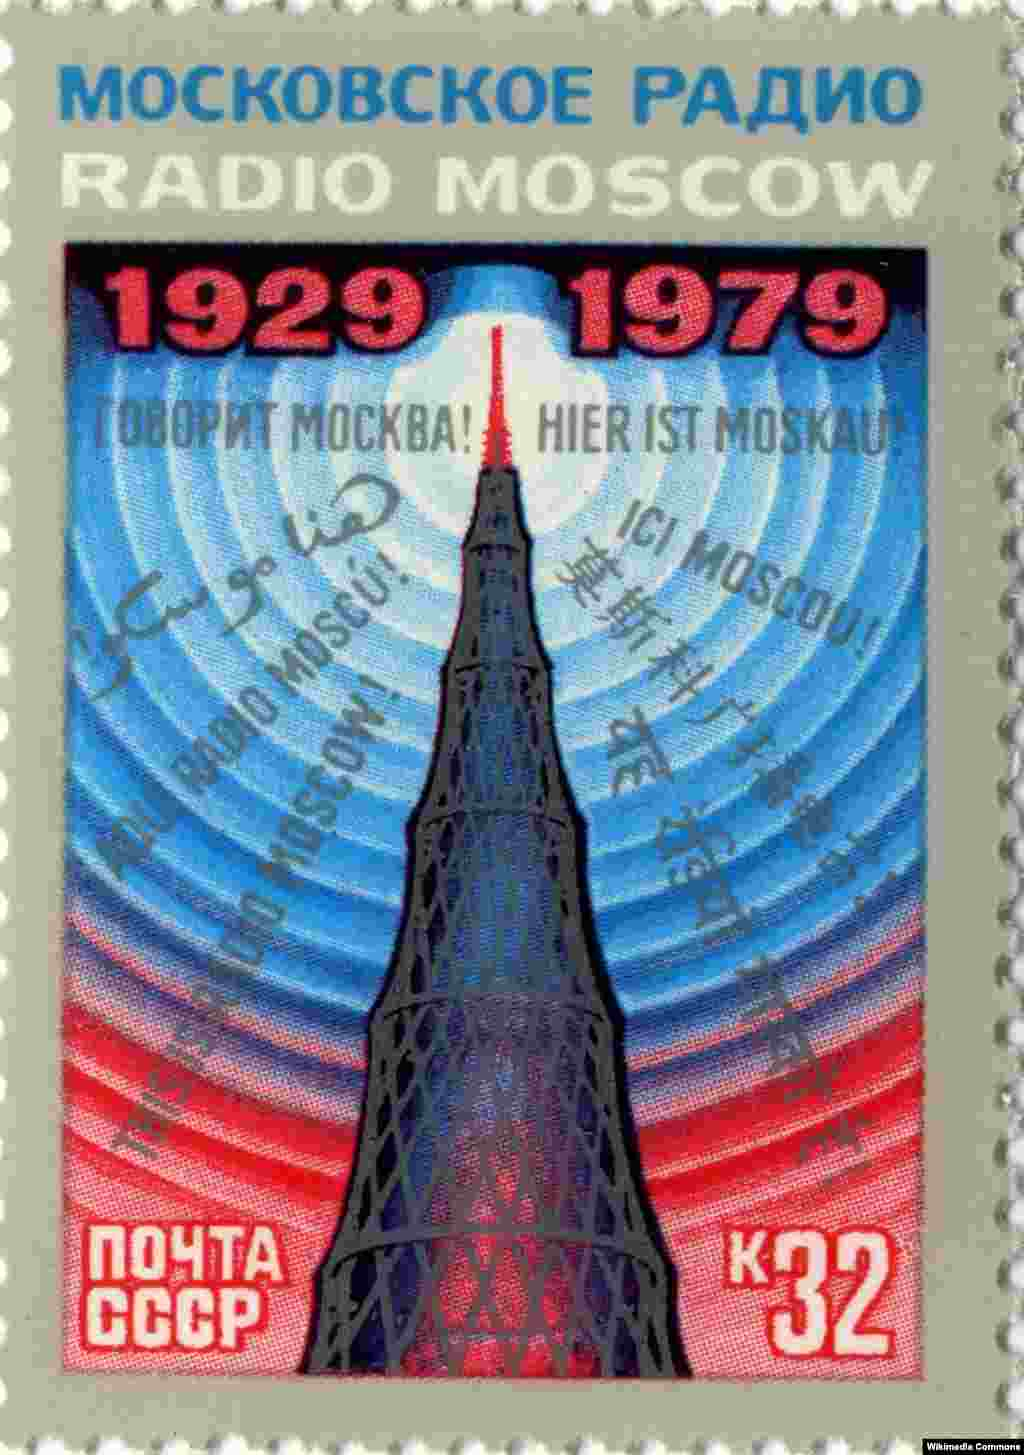 A postage stamp marking 50 years of Radio Moscow displays the Shukhov Tower.